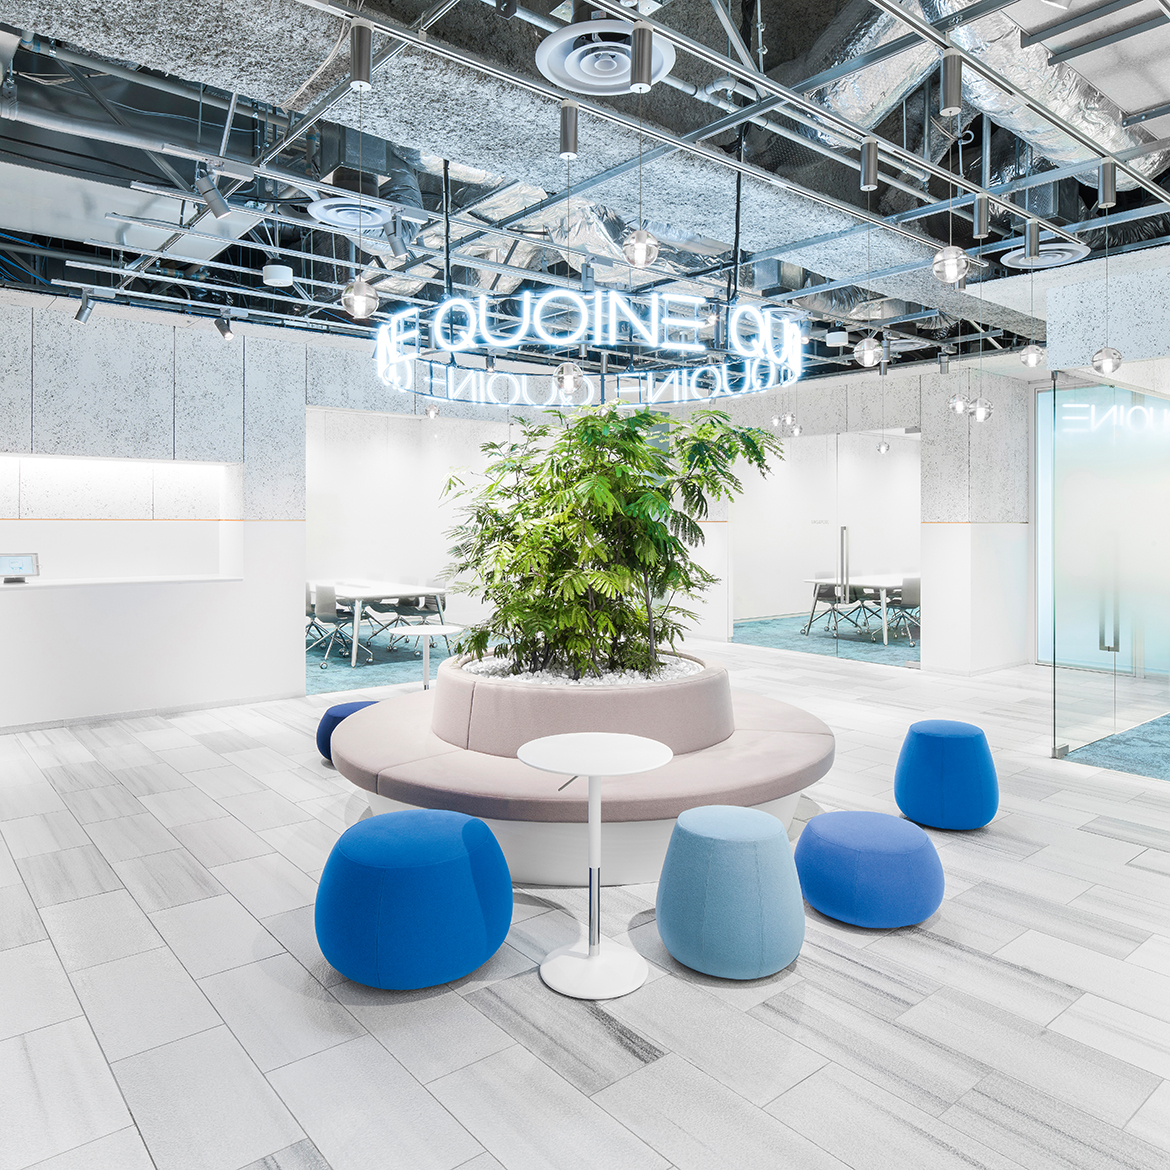 QUOINE Offices - Arper